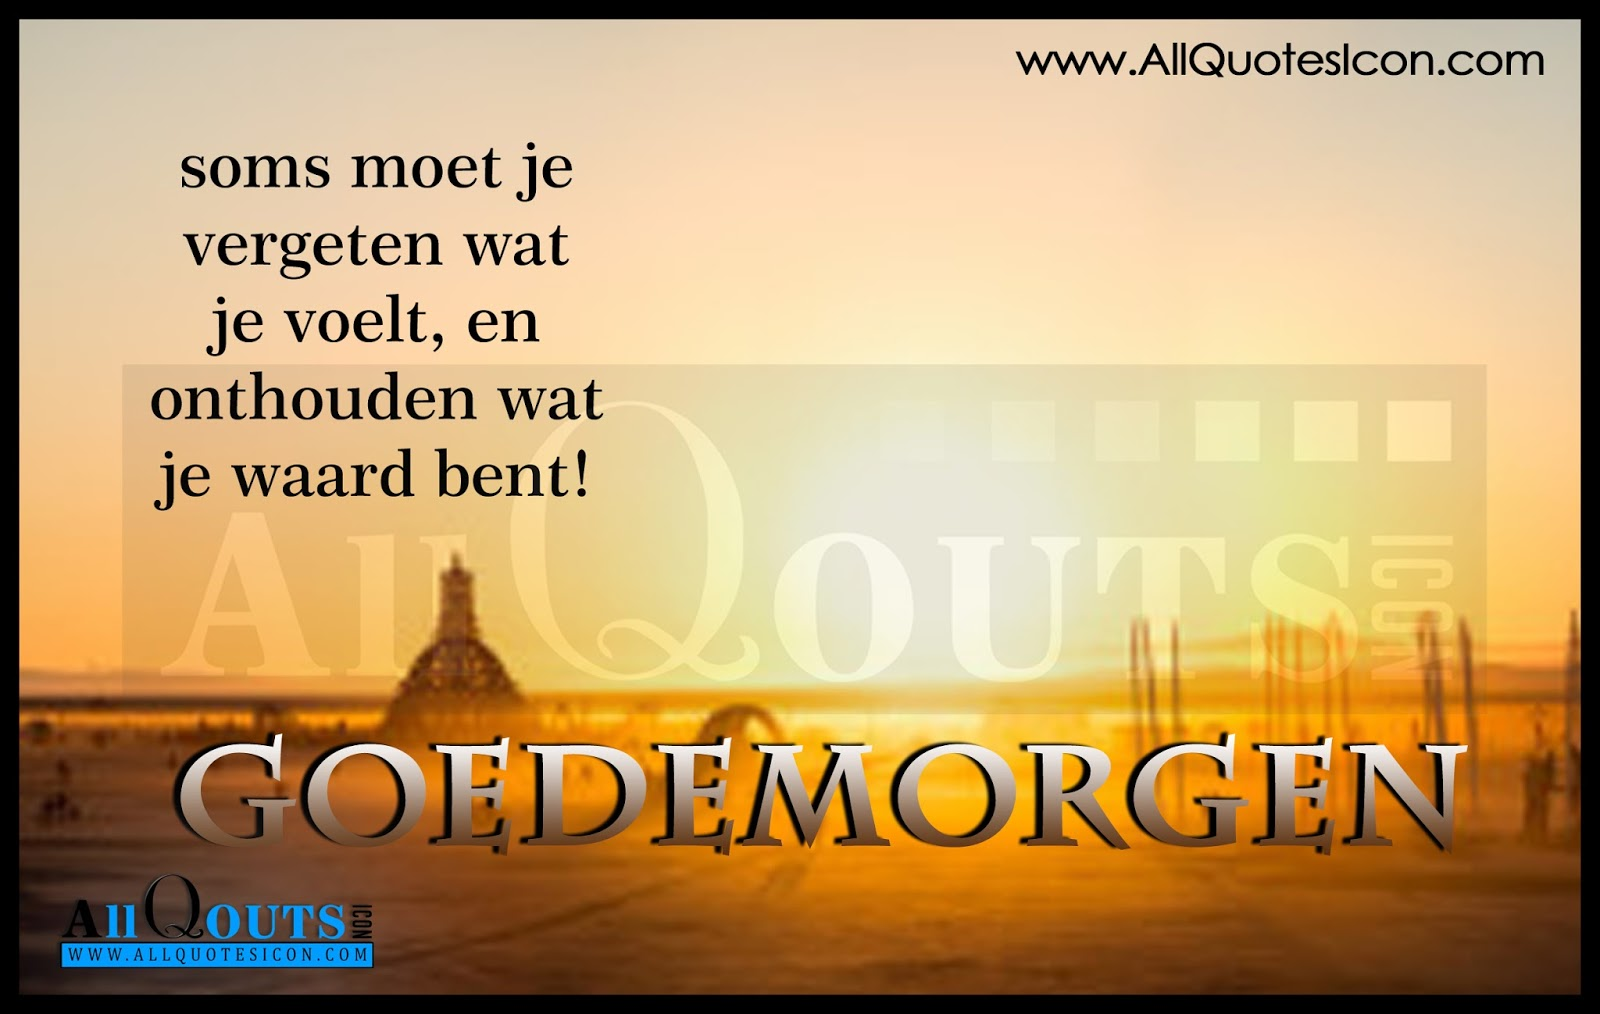 good morning wishes and quotes in dutch www